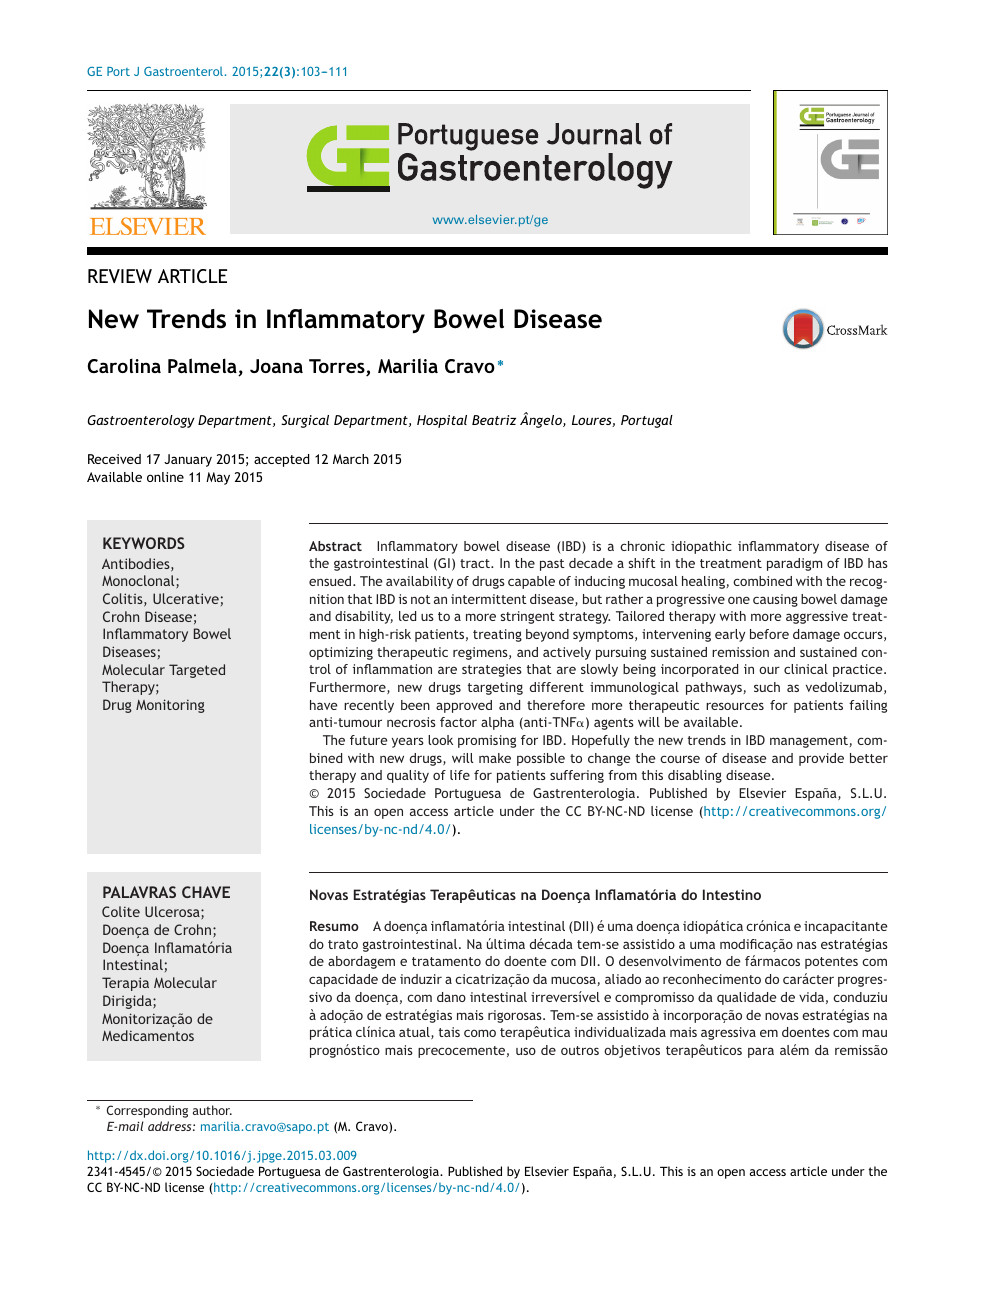 New Trends In Inflammatory Bowel Disease Topic Of Research Paper In Clinical Medicine Download Scholarly Article Pdf And Read For Free On Cyberleninka Open Science Hub